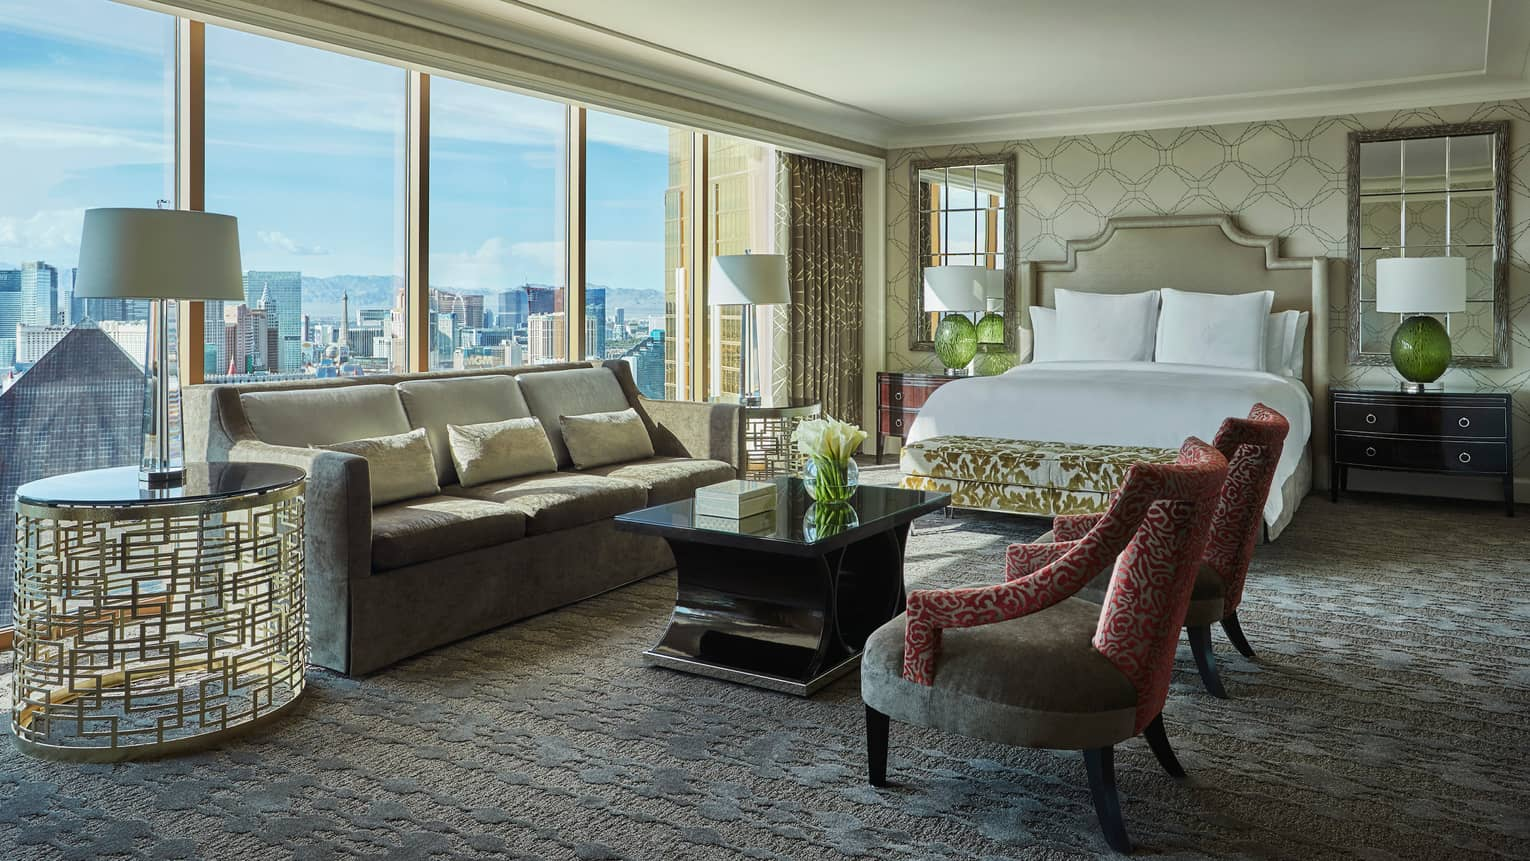 Strip-View Studio grey velvet sofa, gold accent chairs and table, floor-to-ceiling window, city views